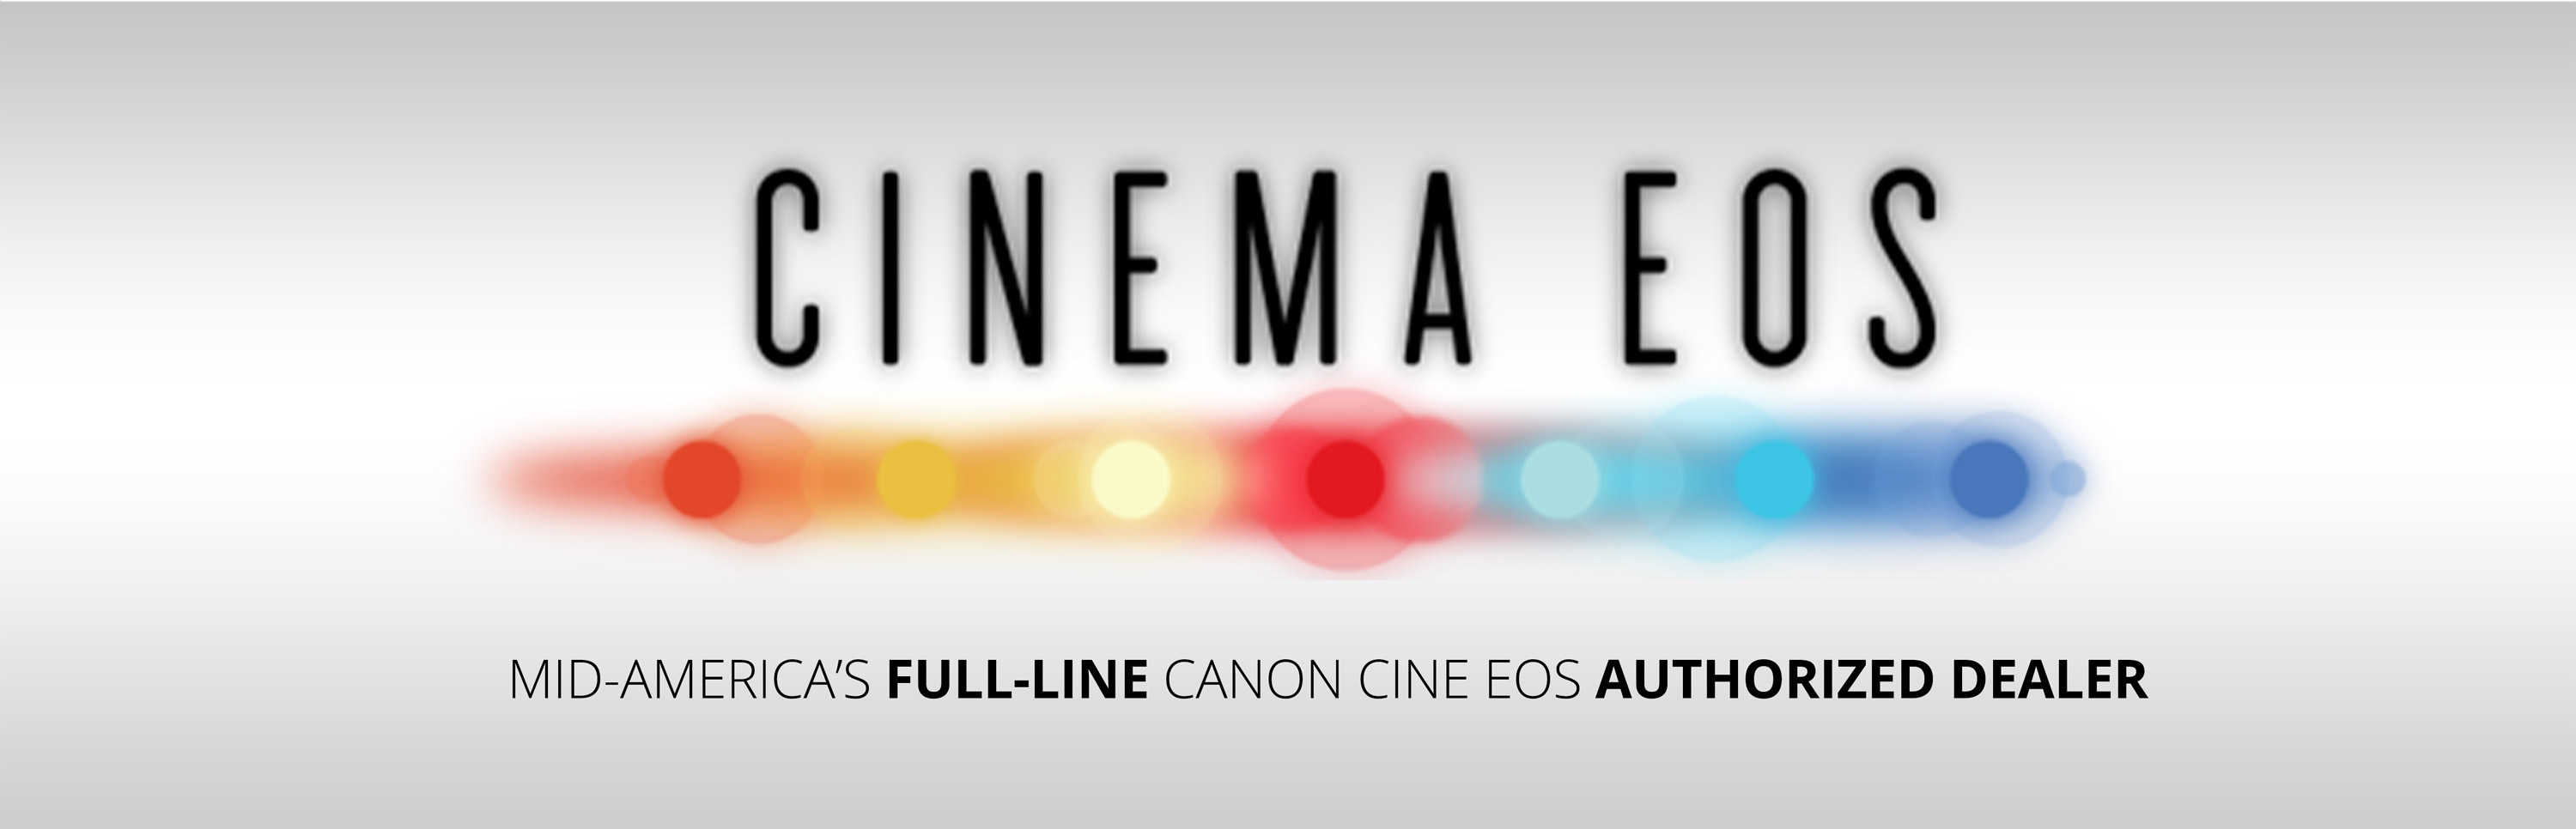 canon-cine-authorized-dealer-logo-by-tyler2.jpg